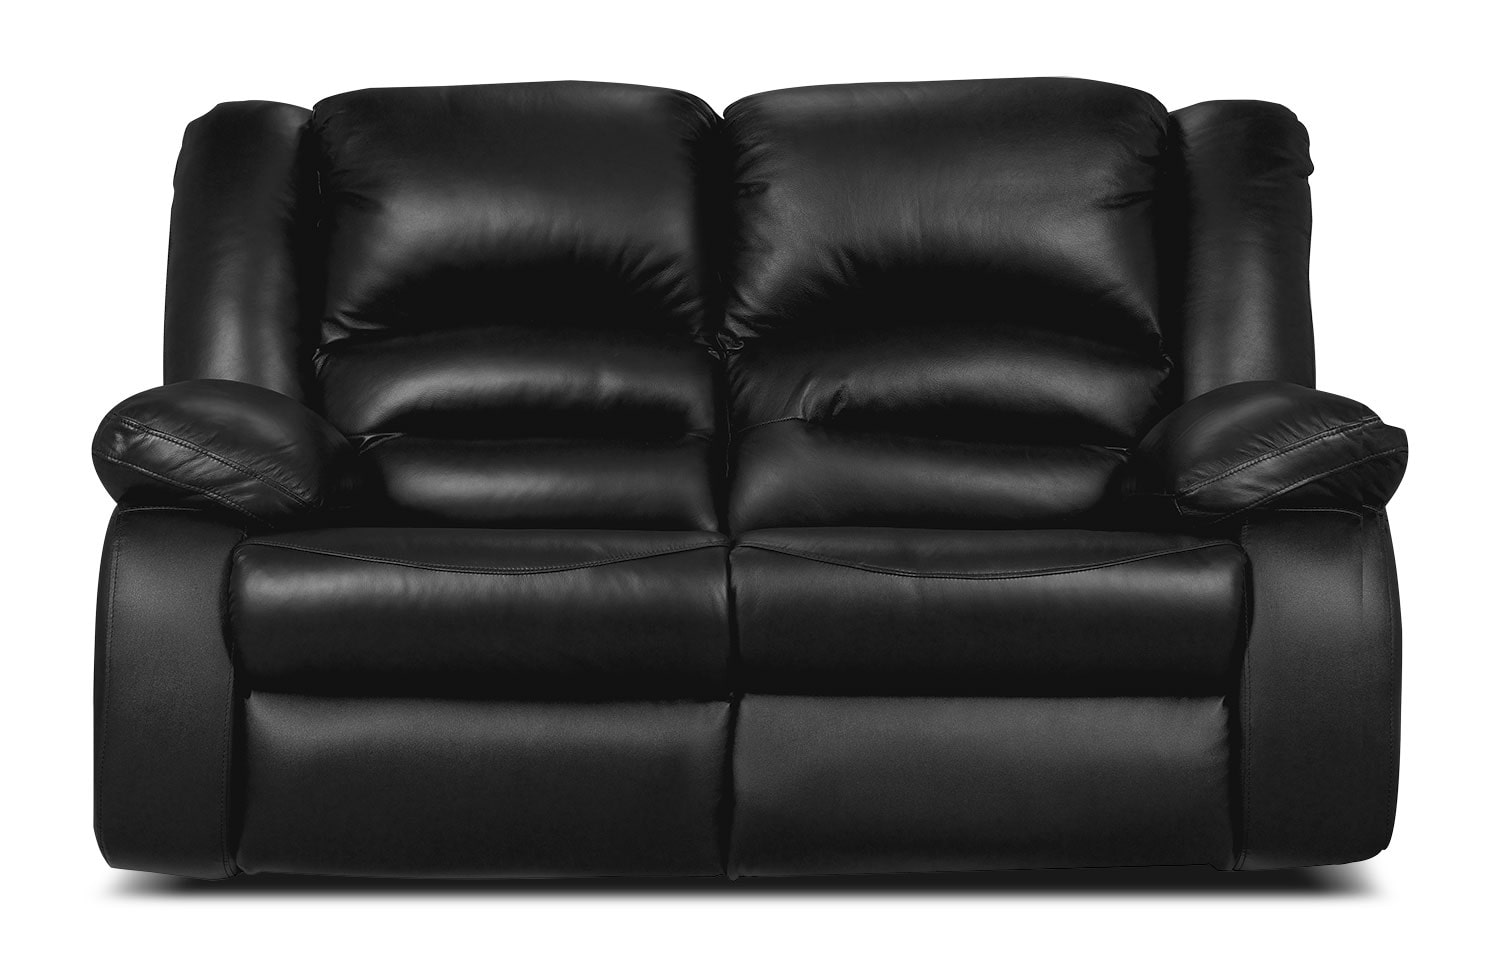 Living Room Furniture - Toreno Black Genuine Leather Reclining Loveseat